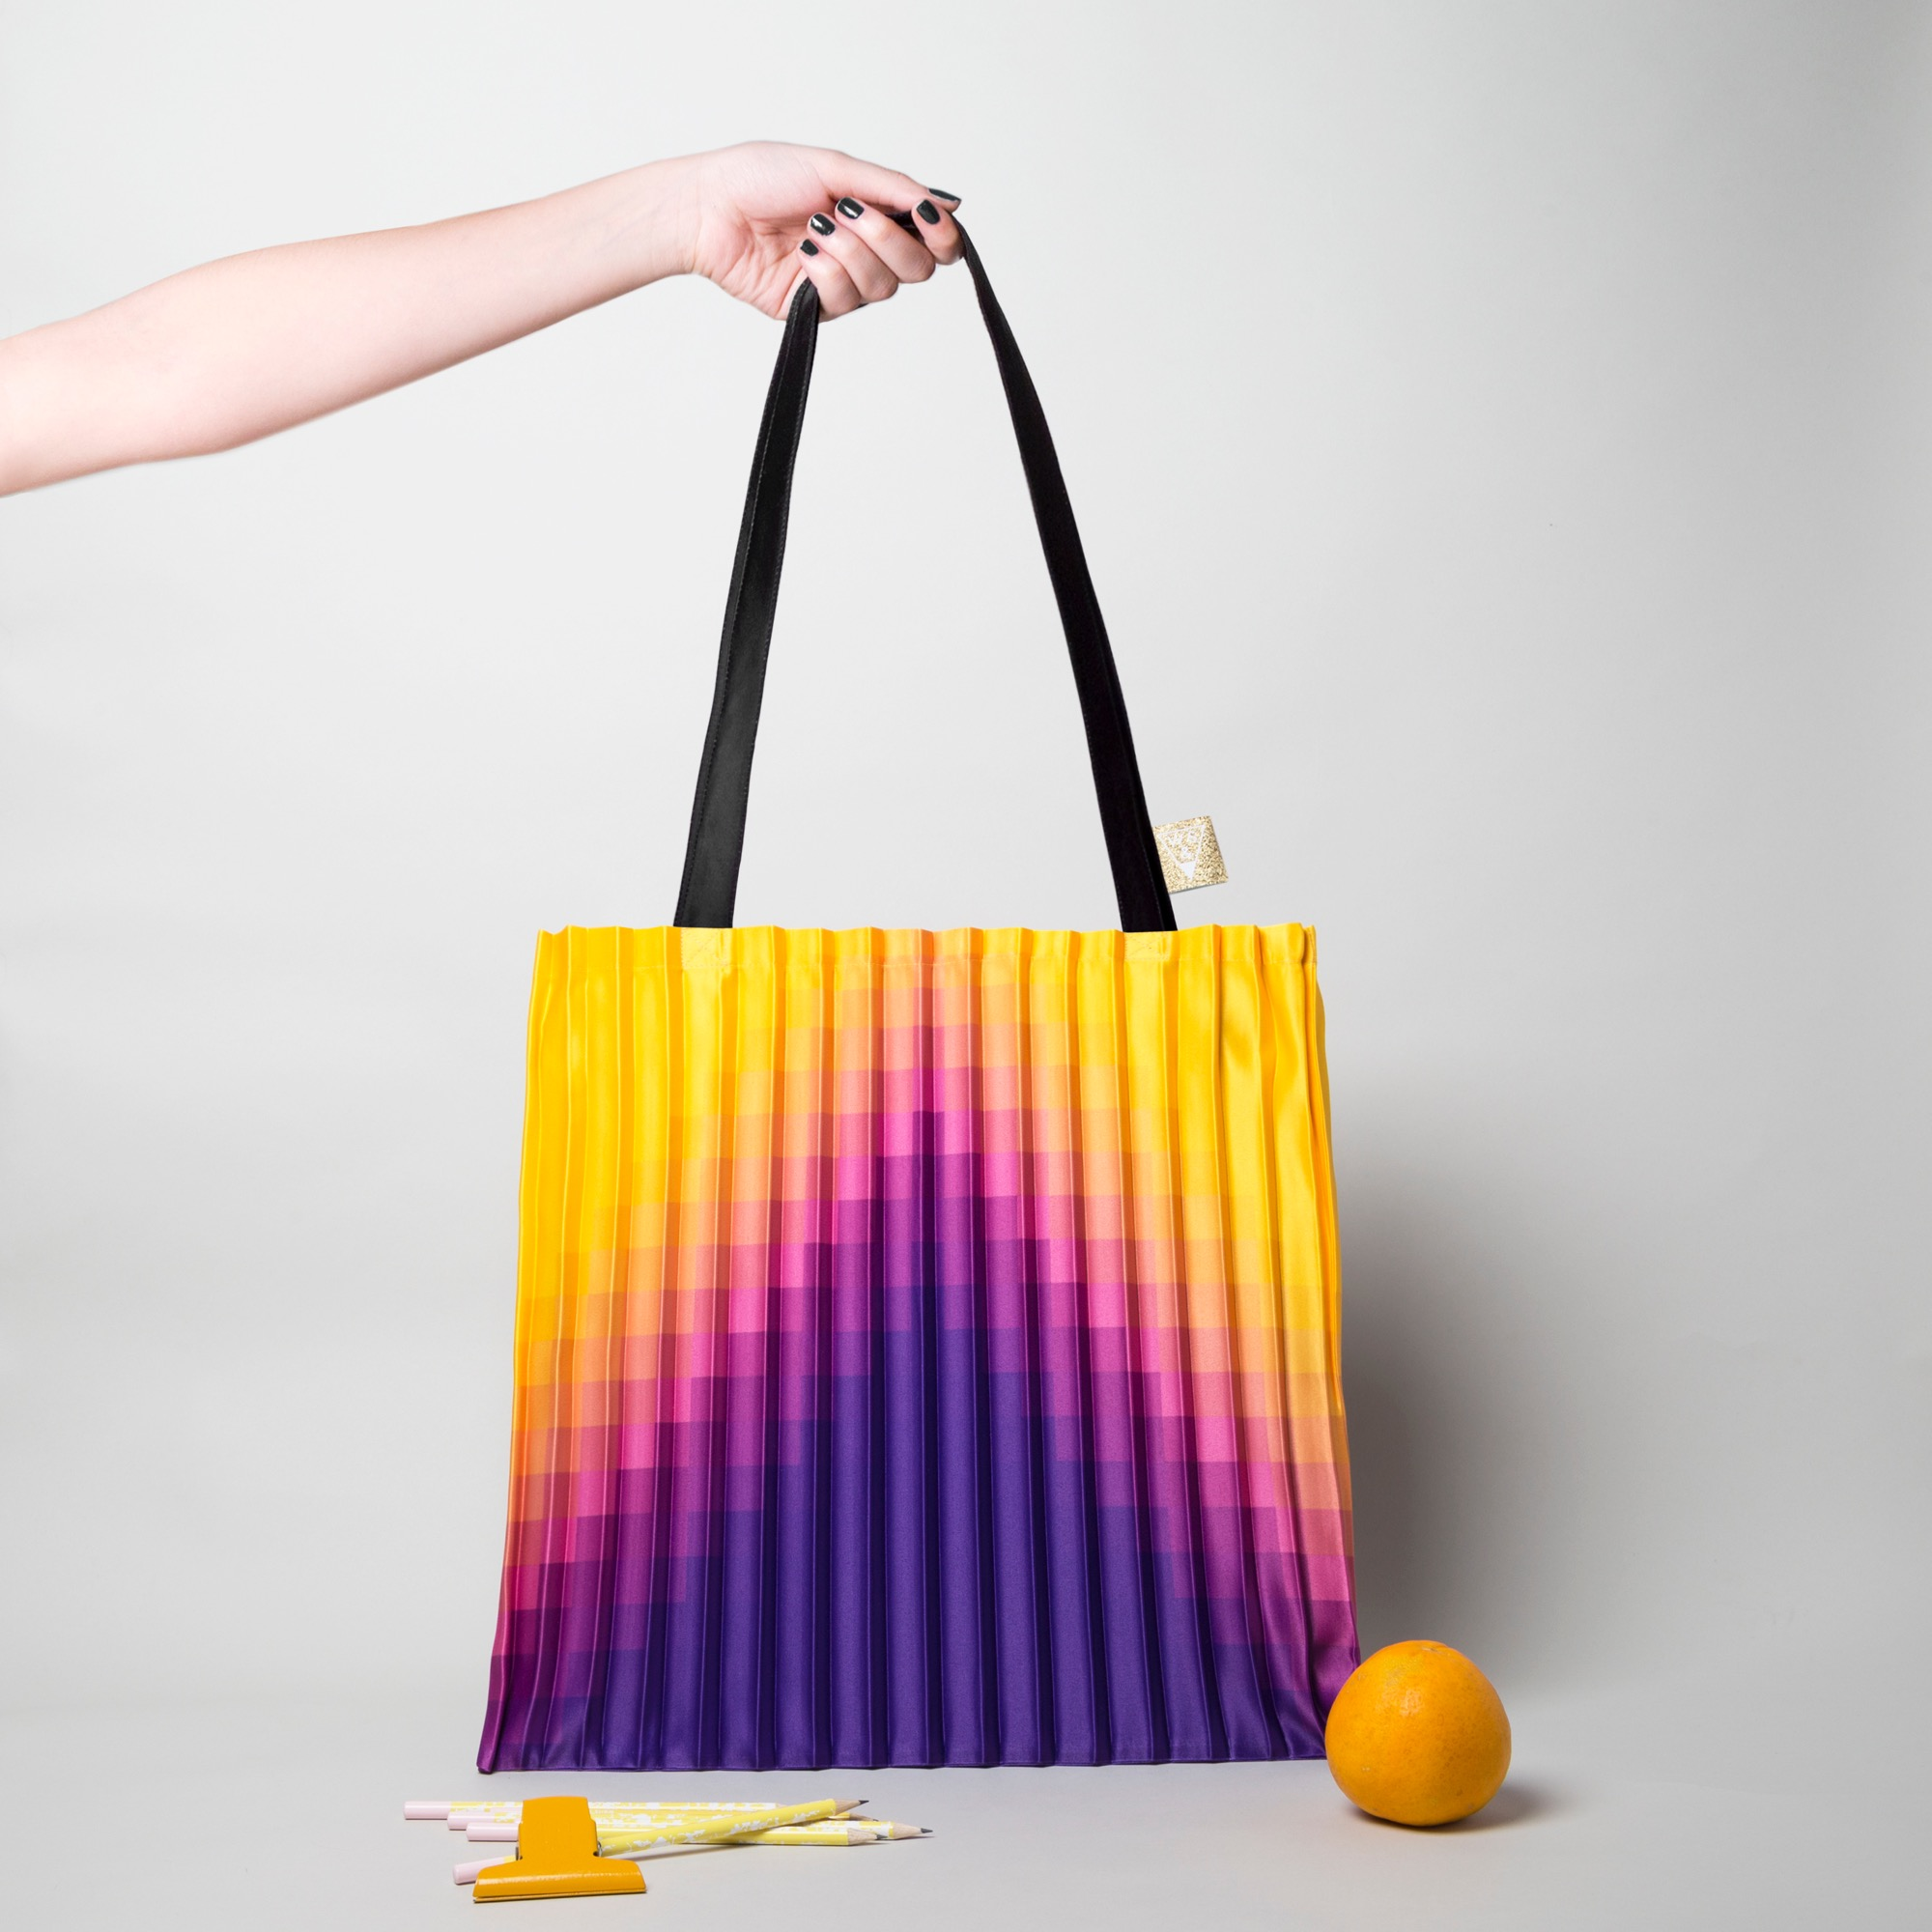 WS ToteBag Pixelone Overview